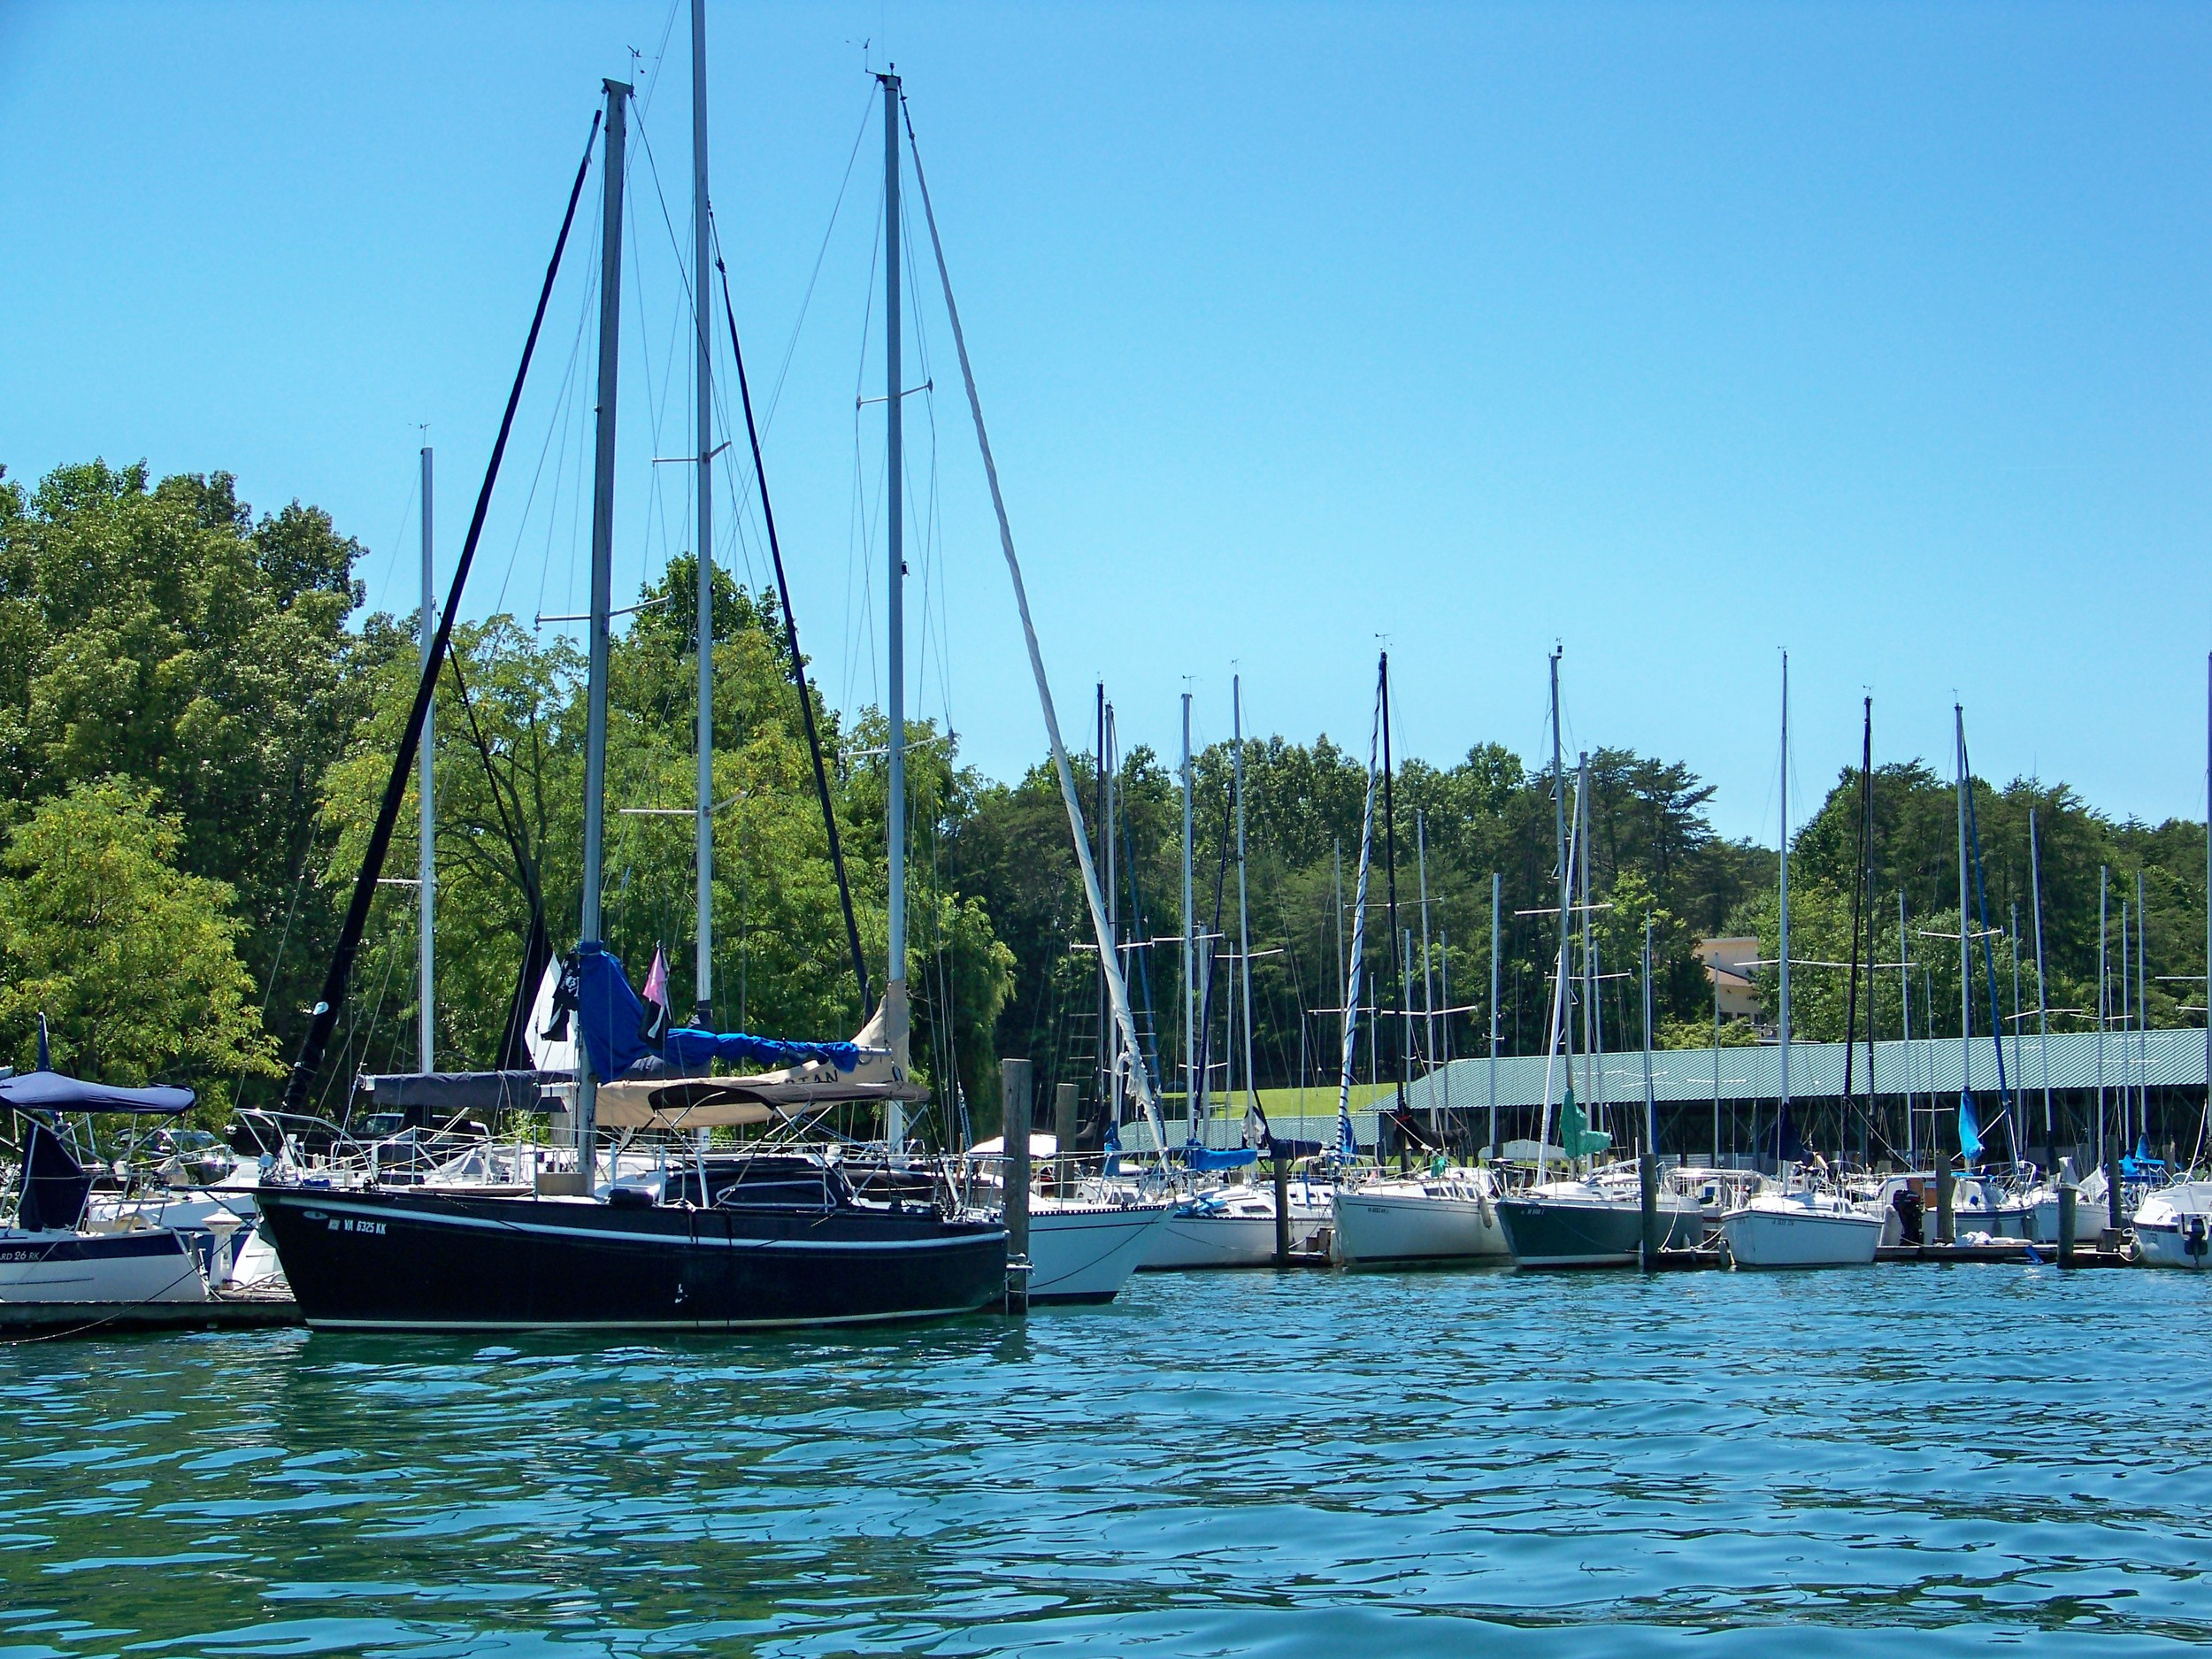 Sailing and all types of boating is popular at Smith Mountain.